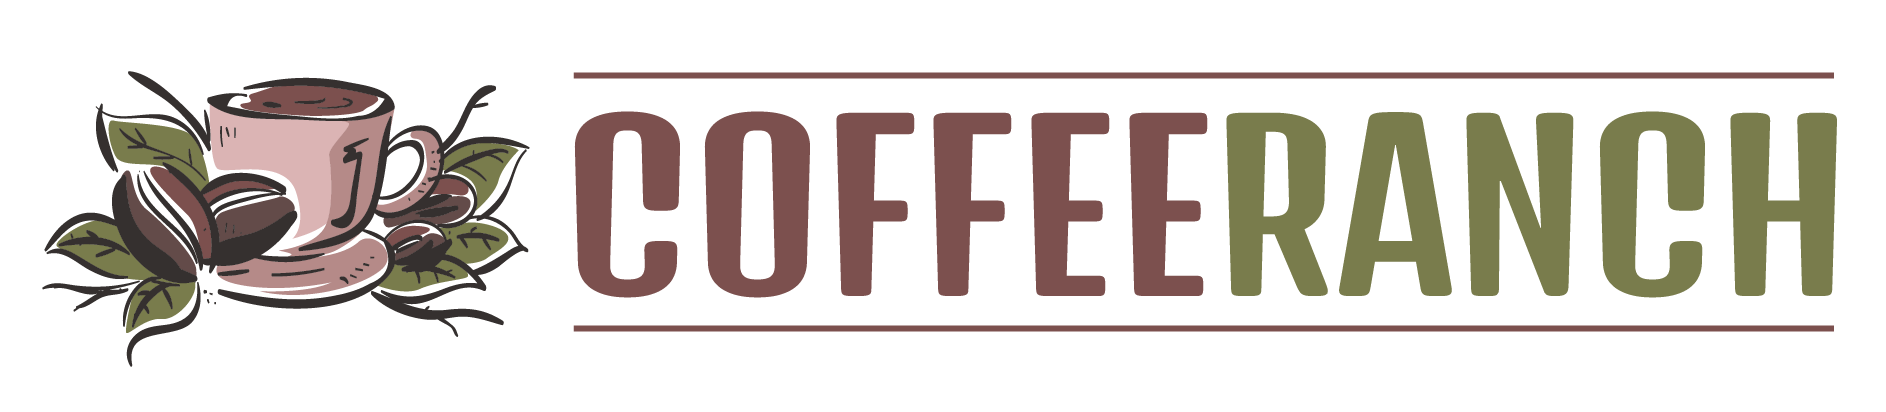 coffeeranch.net